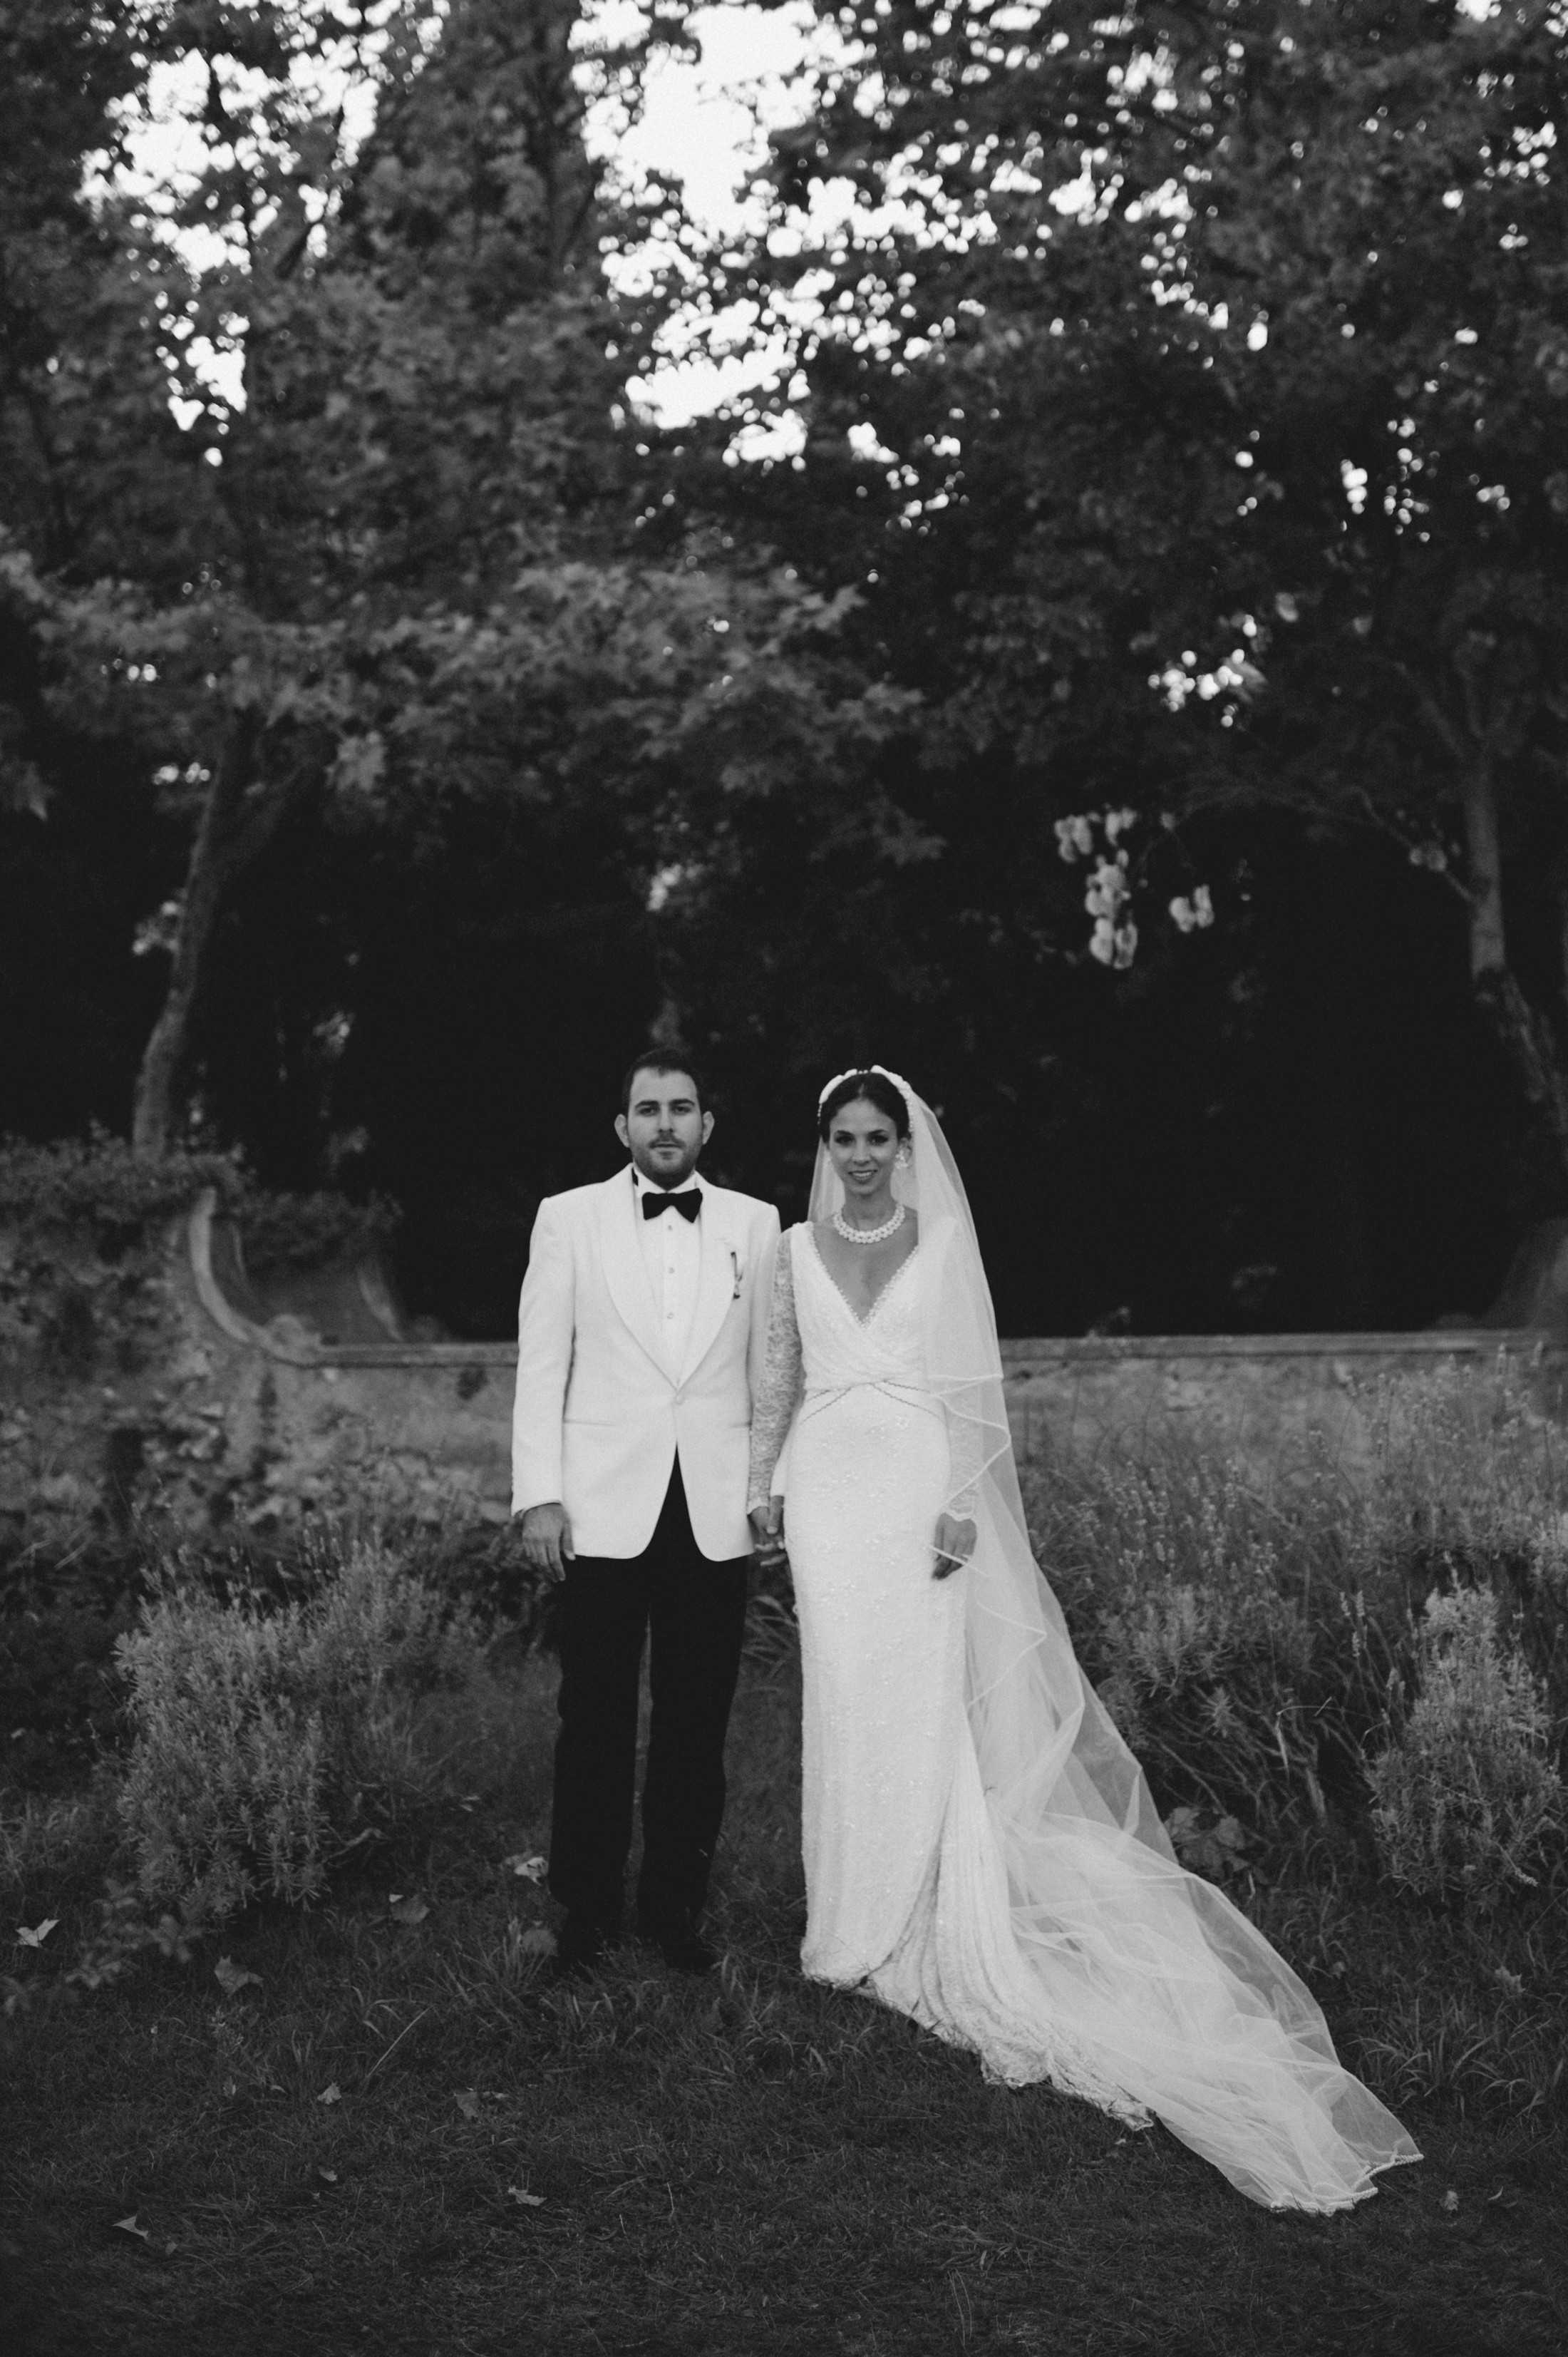 the bride and the groom standing black and white